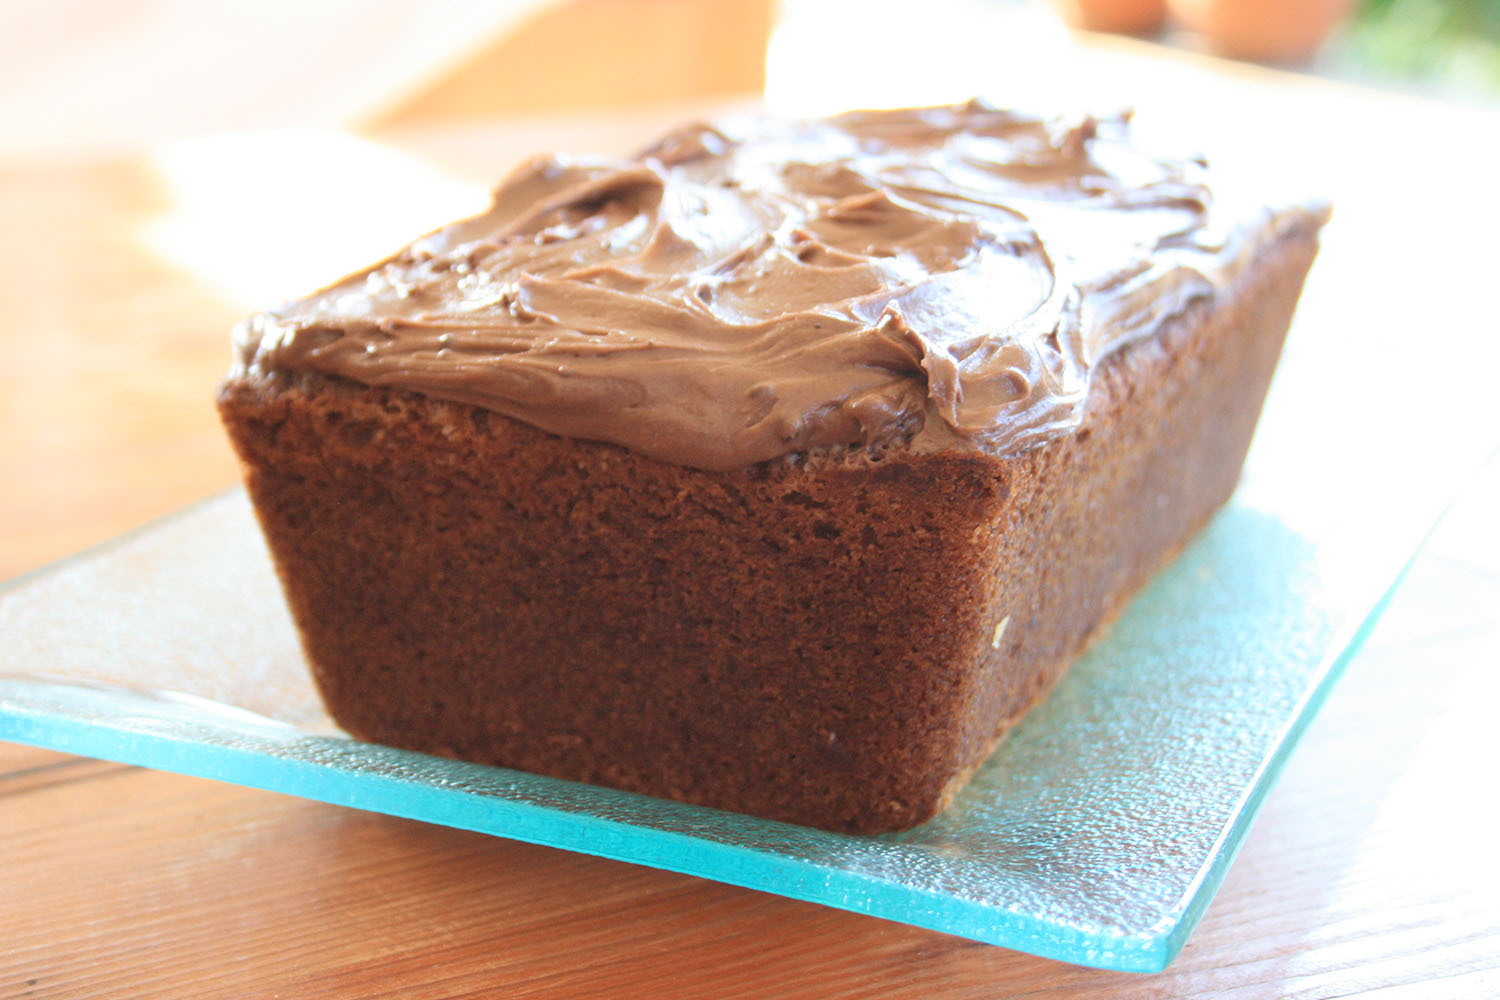 Delectable banana bread with chocolate & peanut butter icing